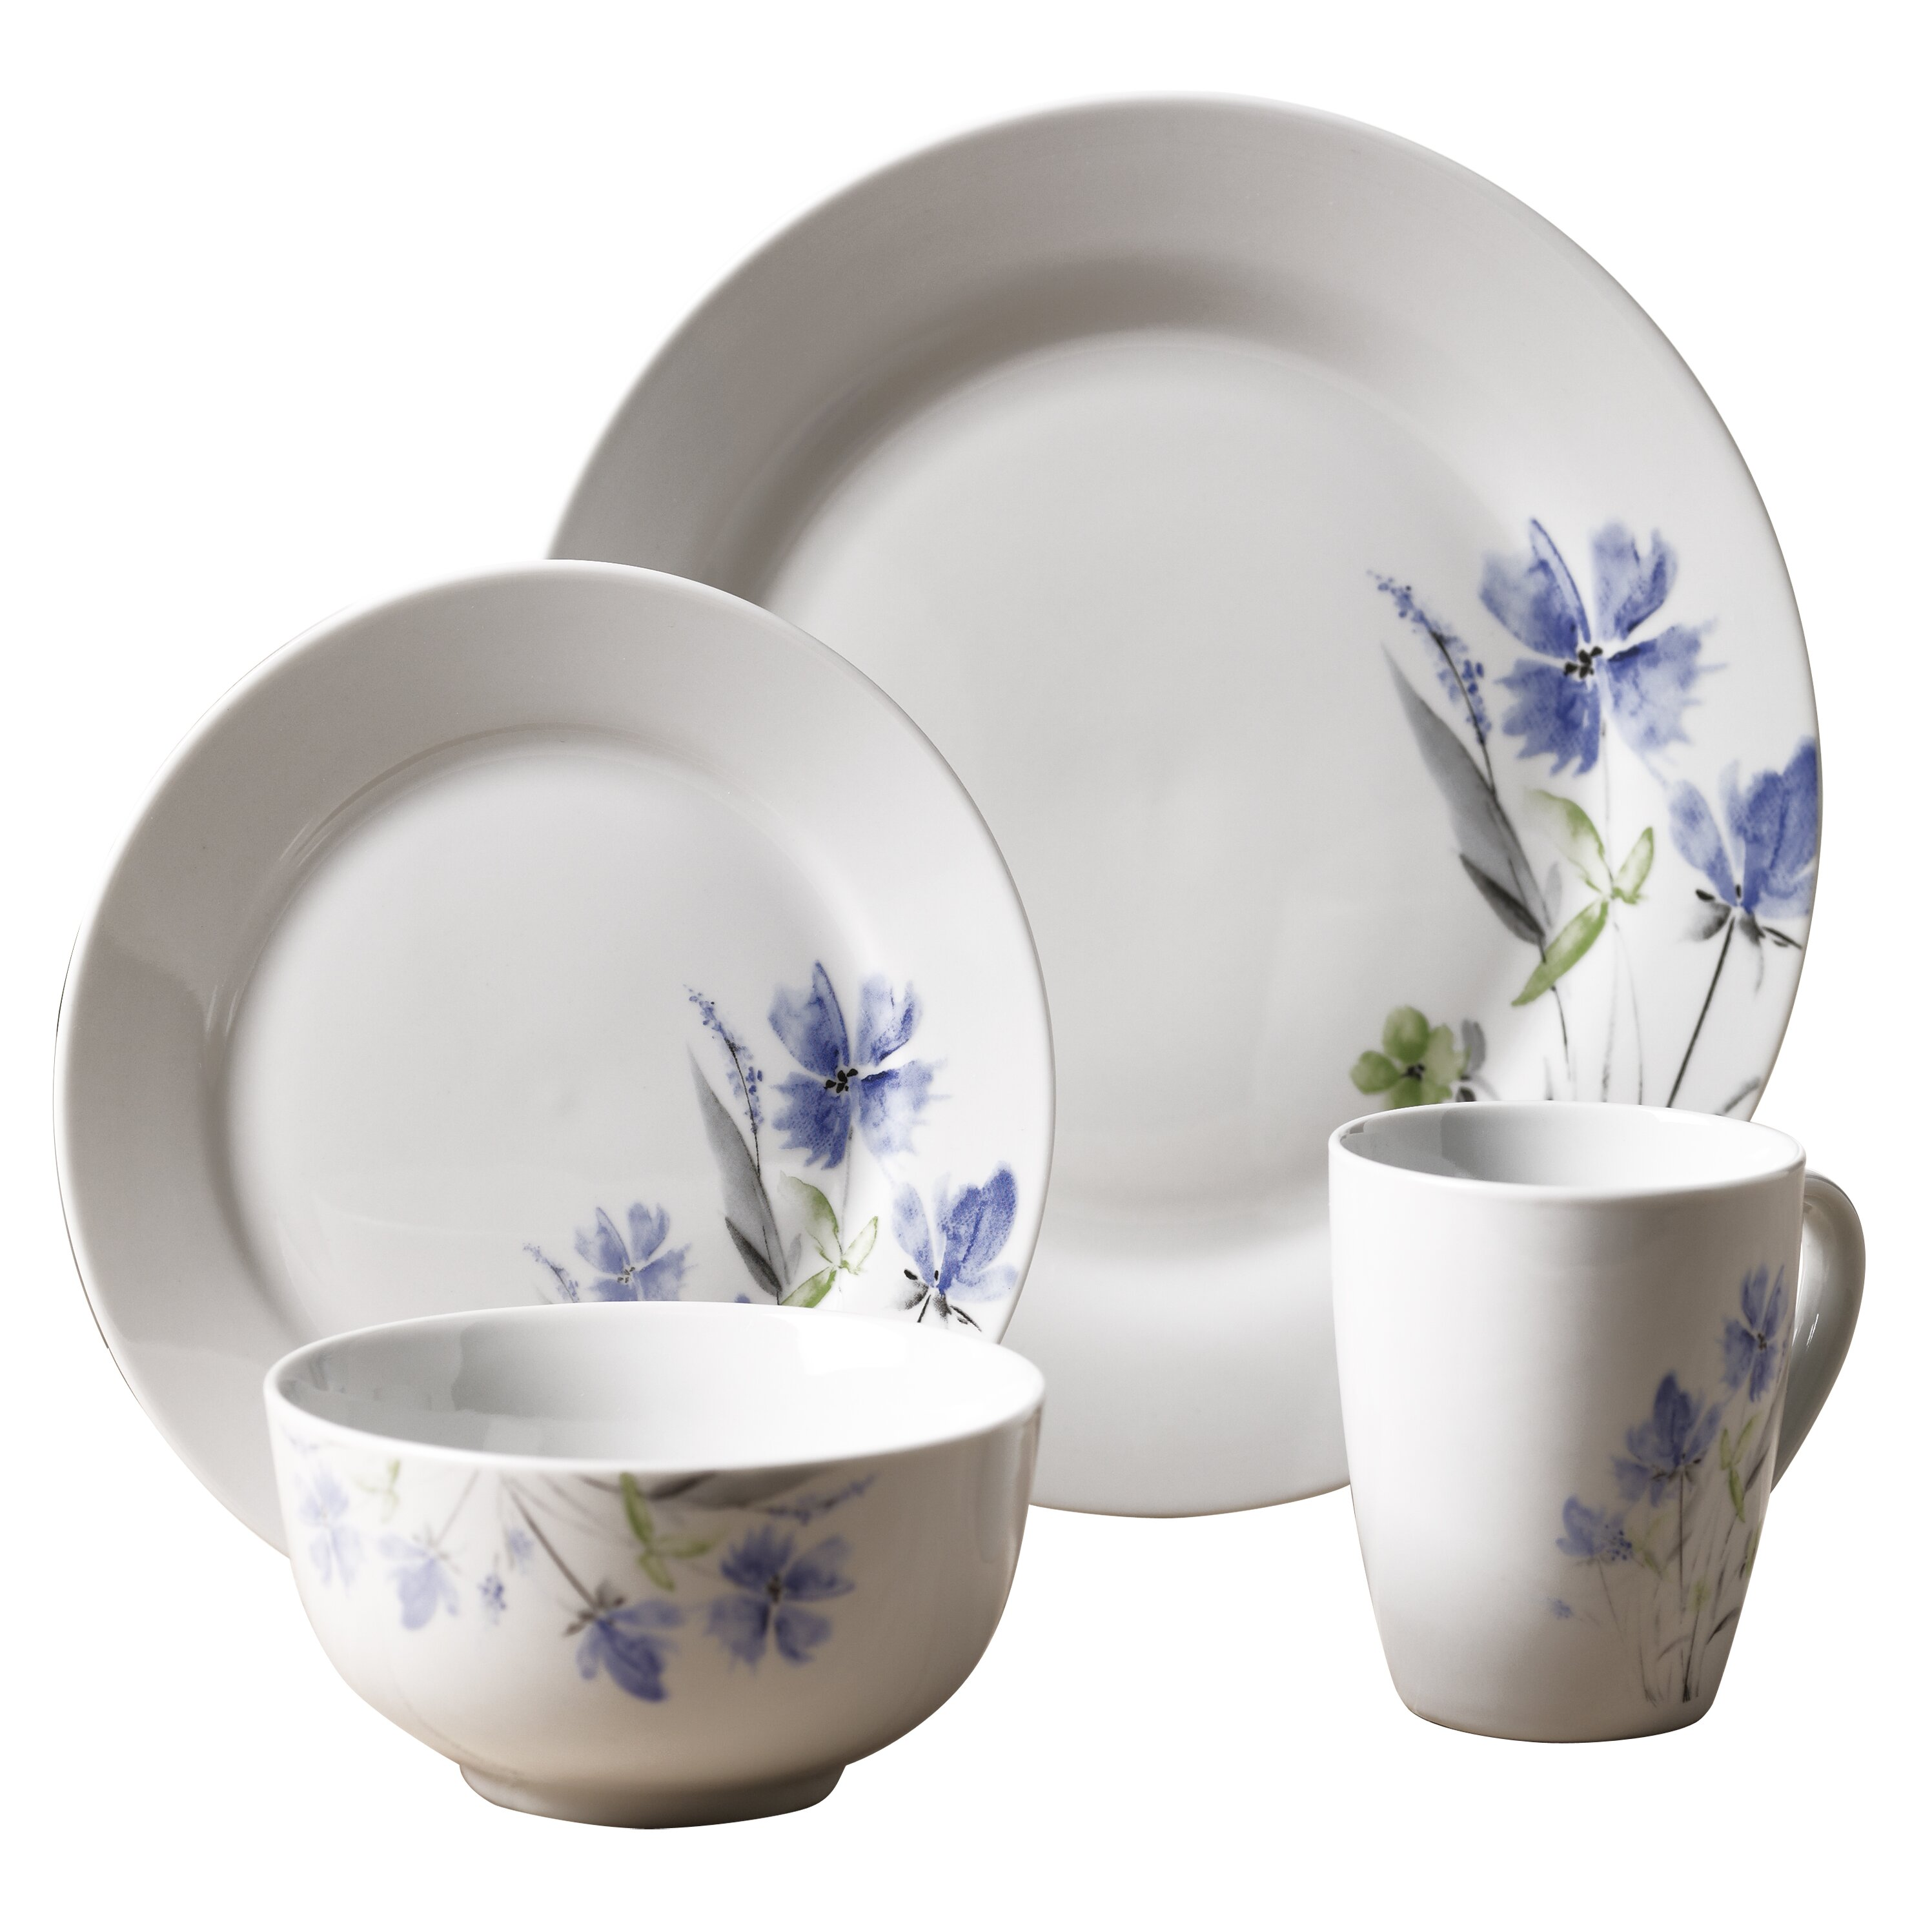 Tabletops Unlimited Misto Angela Dinner Plate Source · Tabletops Gallery  Unlimited Kelli Arena